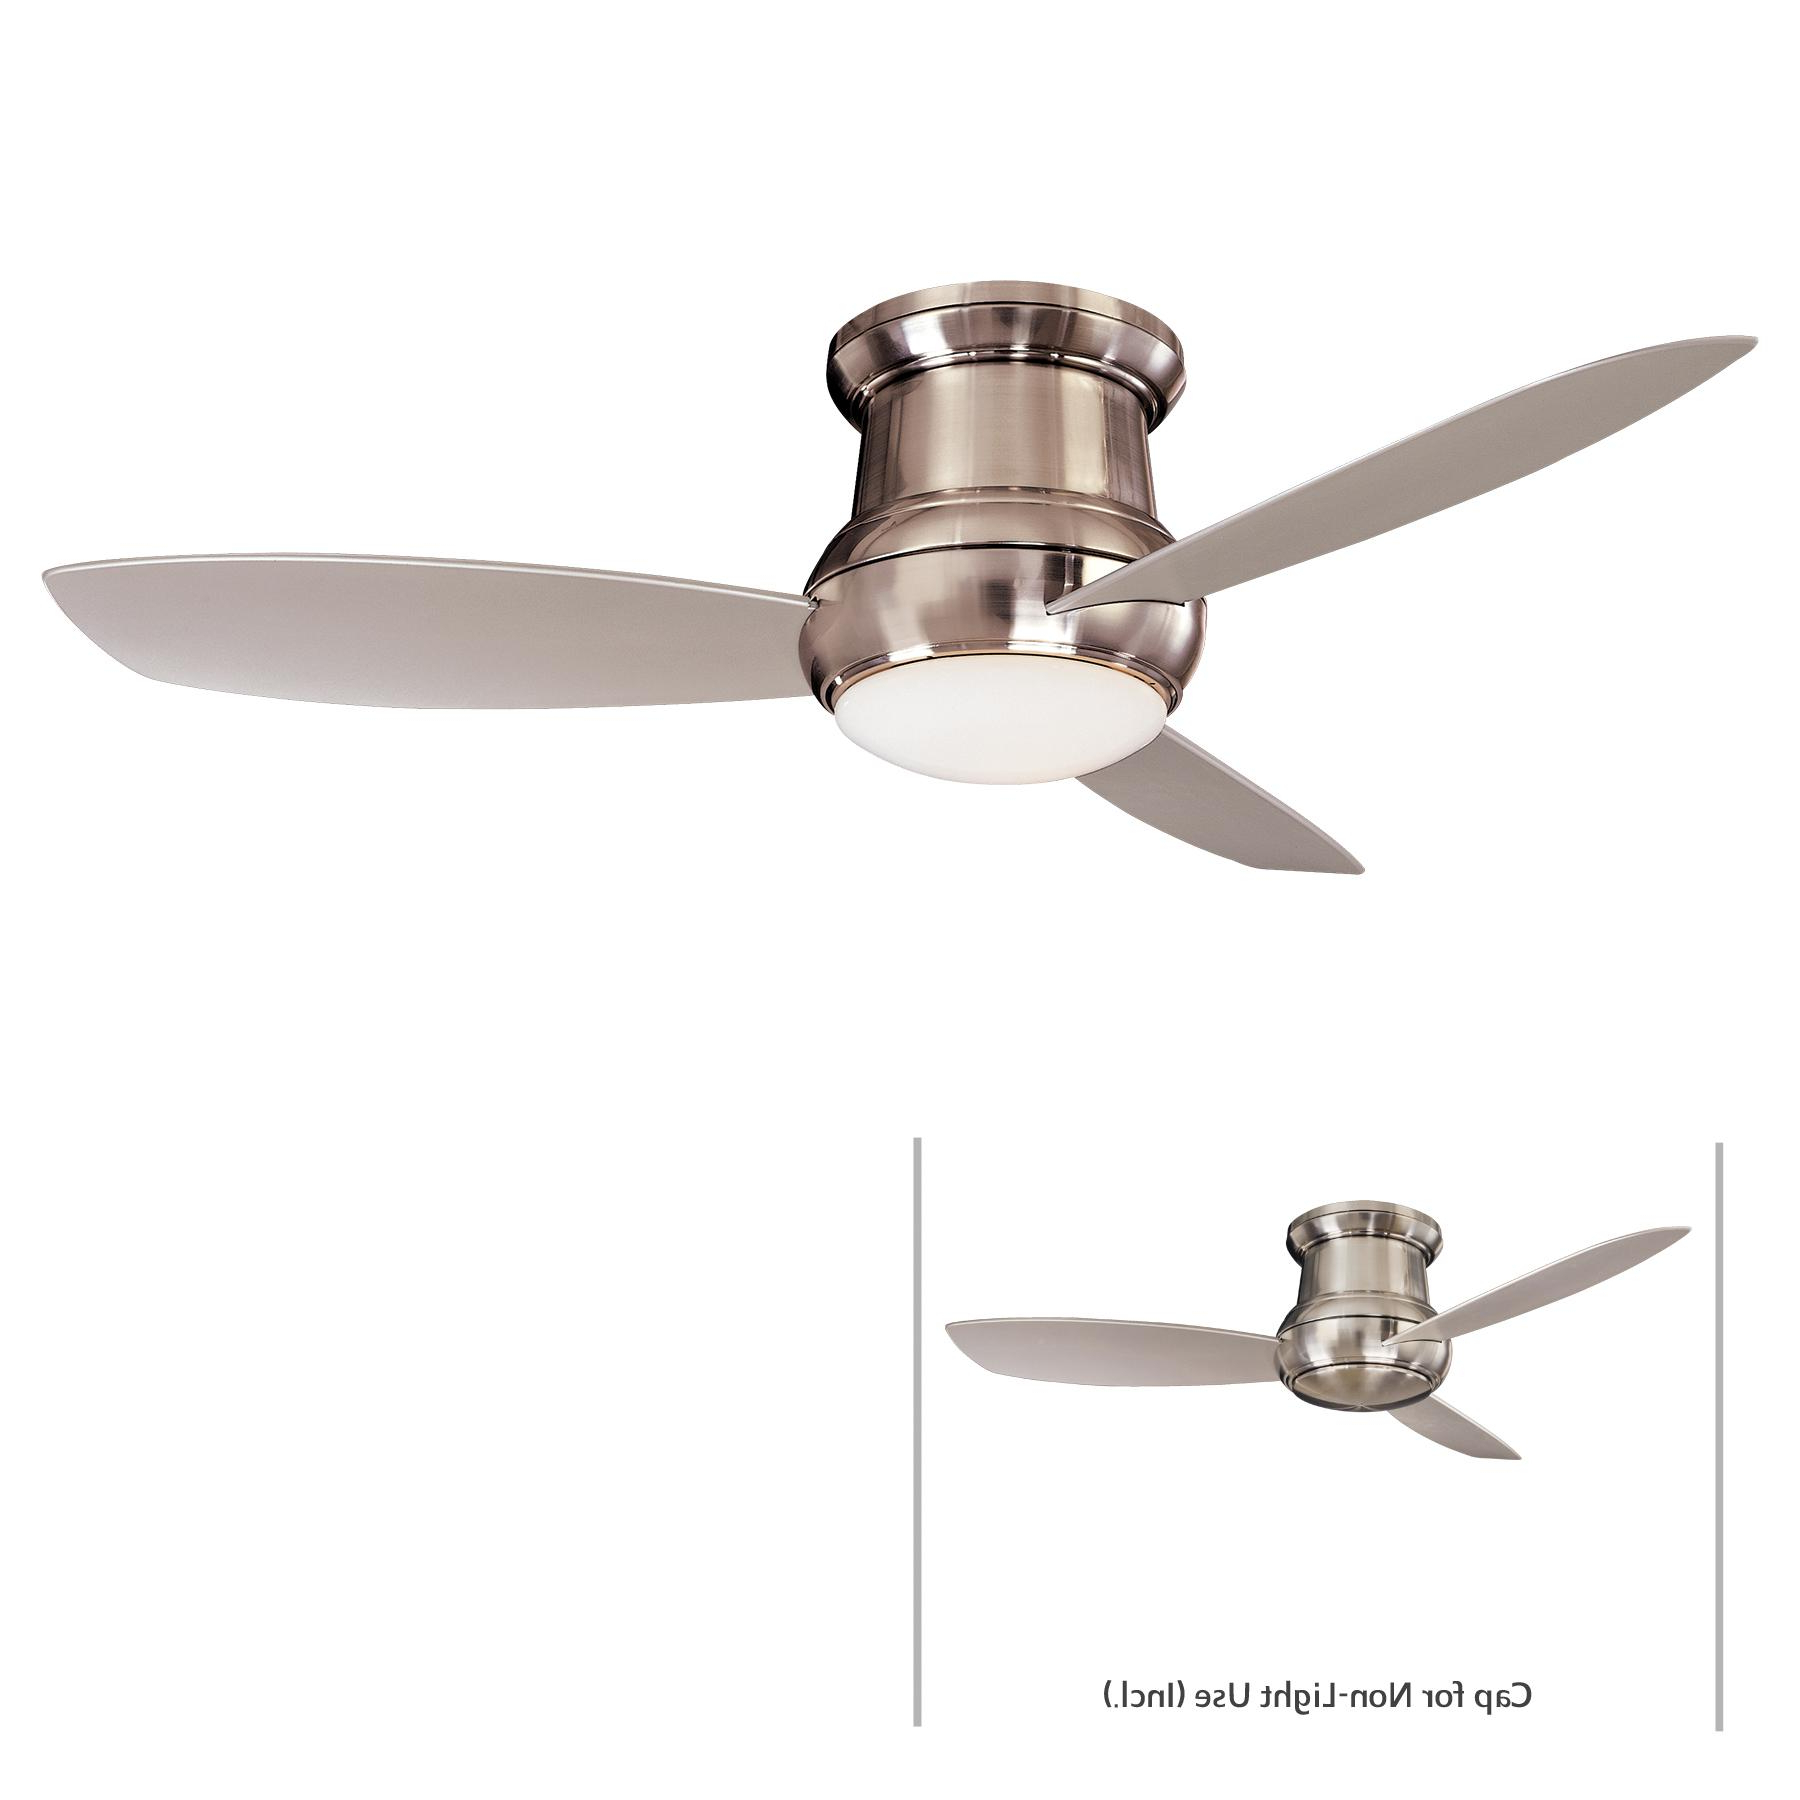 "Details About Minka Aire F474L Bnw 52"" Led Flush Mount Ceiling Fan Pertaining To Latest Concept Ii 3 Blade Led Ceiling Fans With Remote (View 9 of 20)"